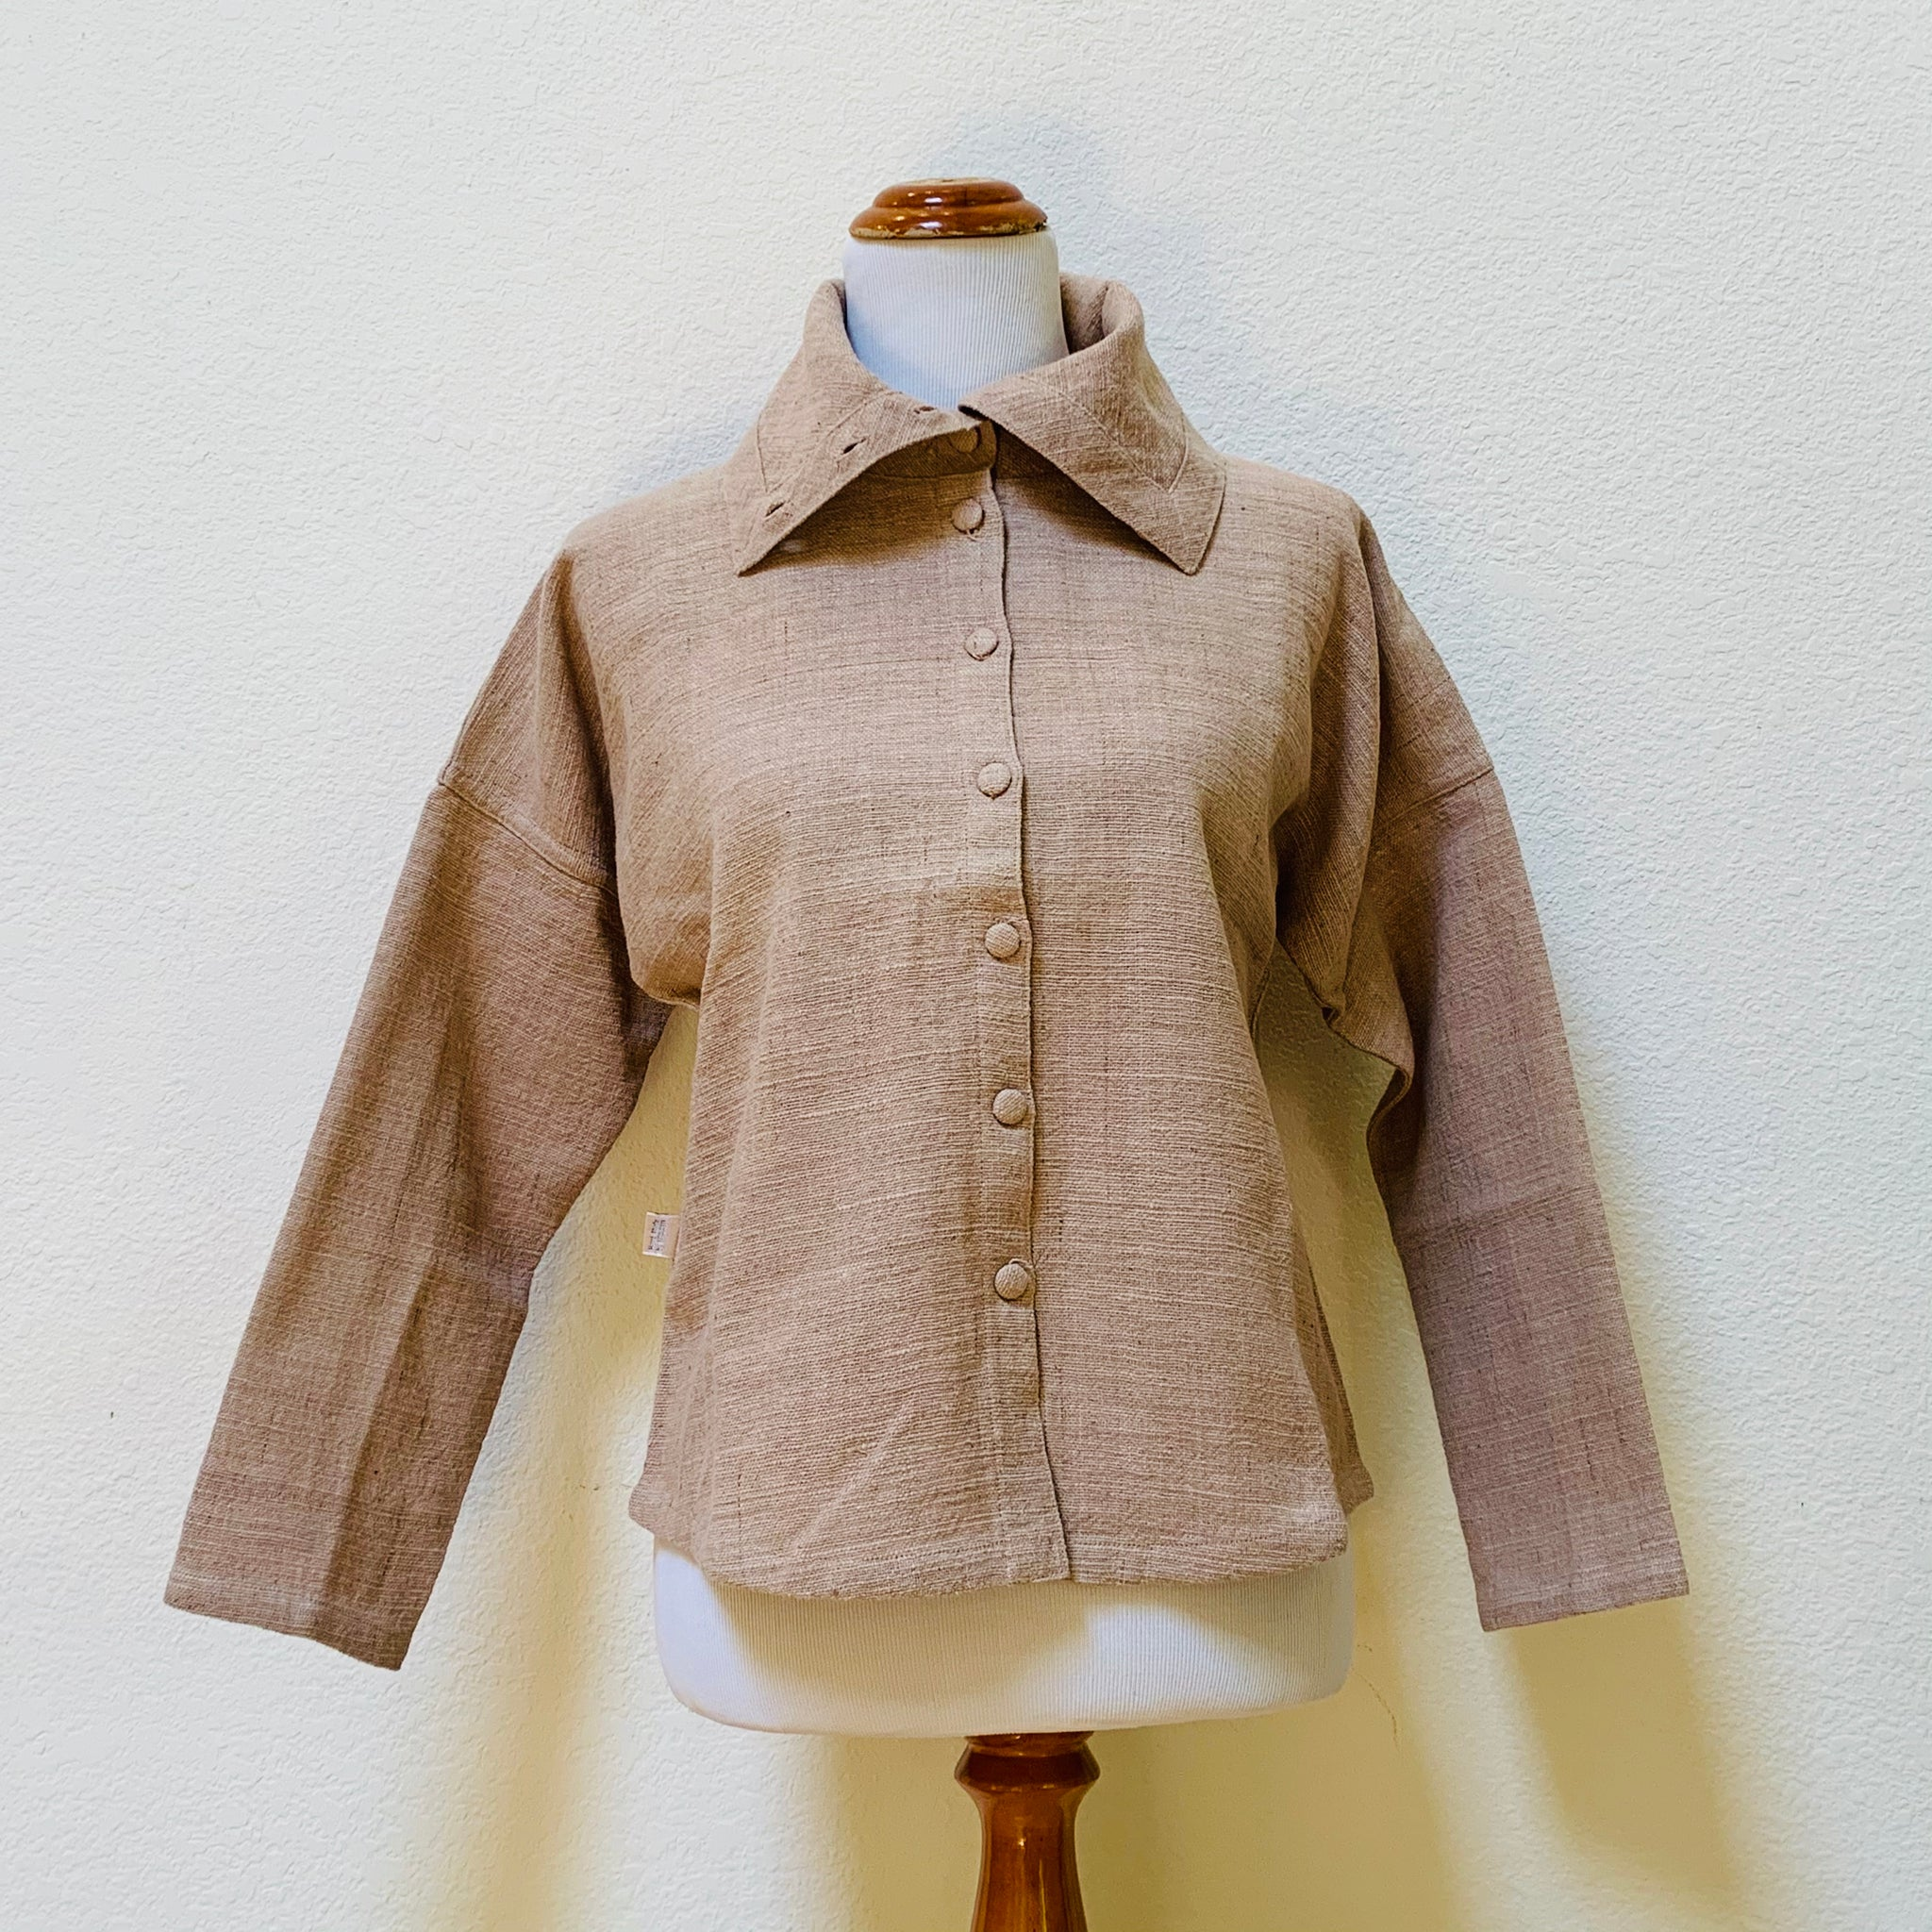 Long Sleeve Large Collar Blouse 1075T 4D - Size 4 - Light Brown